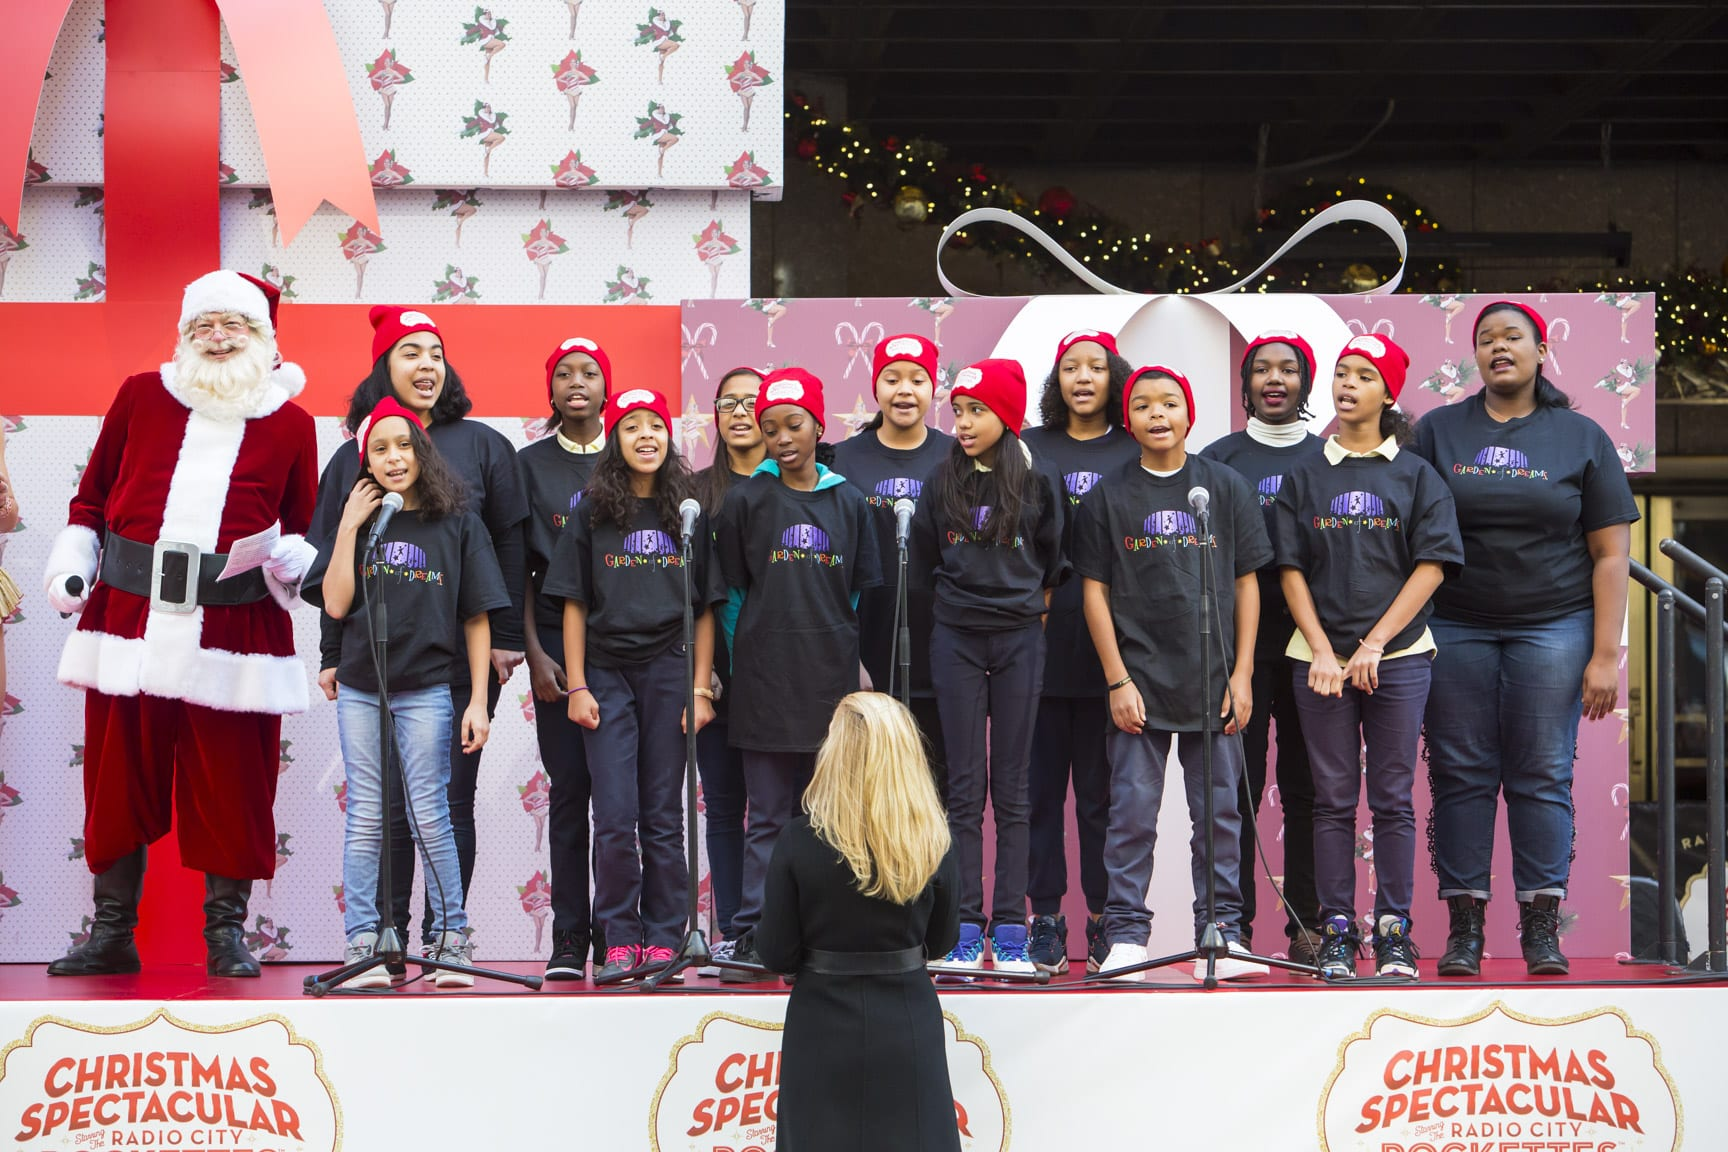 November 16, 2016: The Radio City Rockettes and Santa are joined by girls from the Garden of Dreams Foundation to sing on a float outside of Radio City Music Hall in New York City.